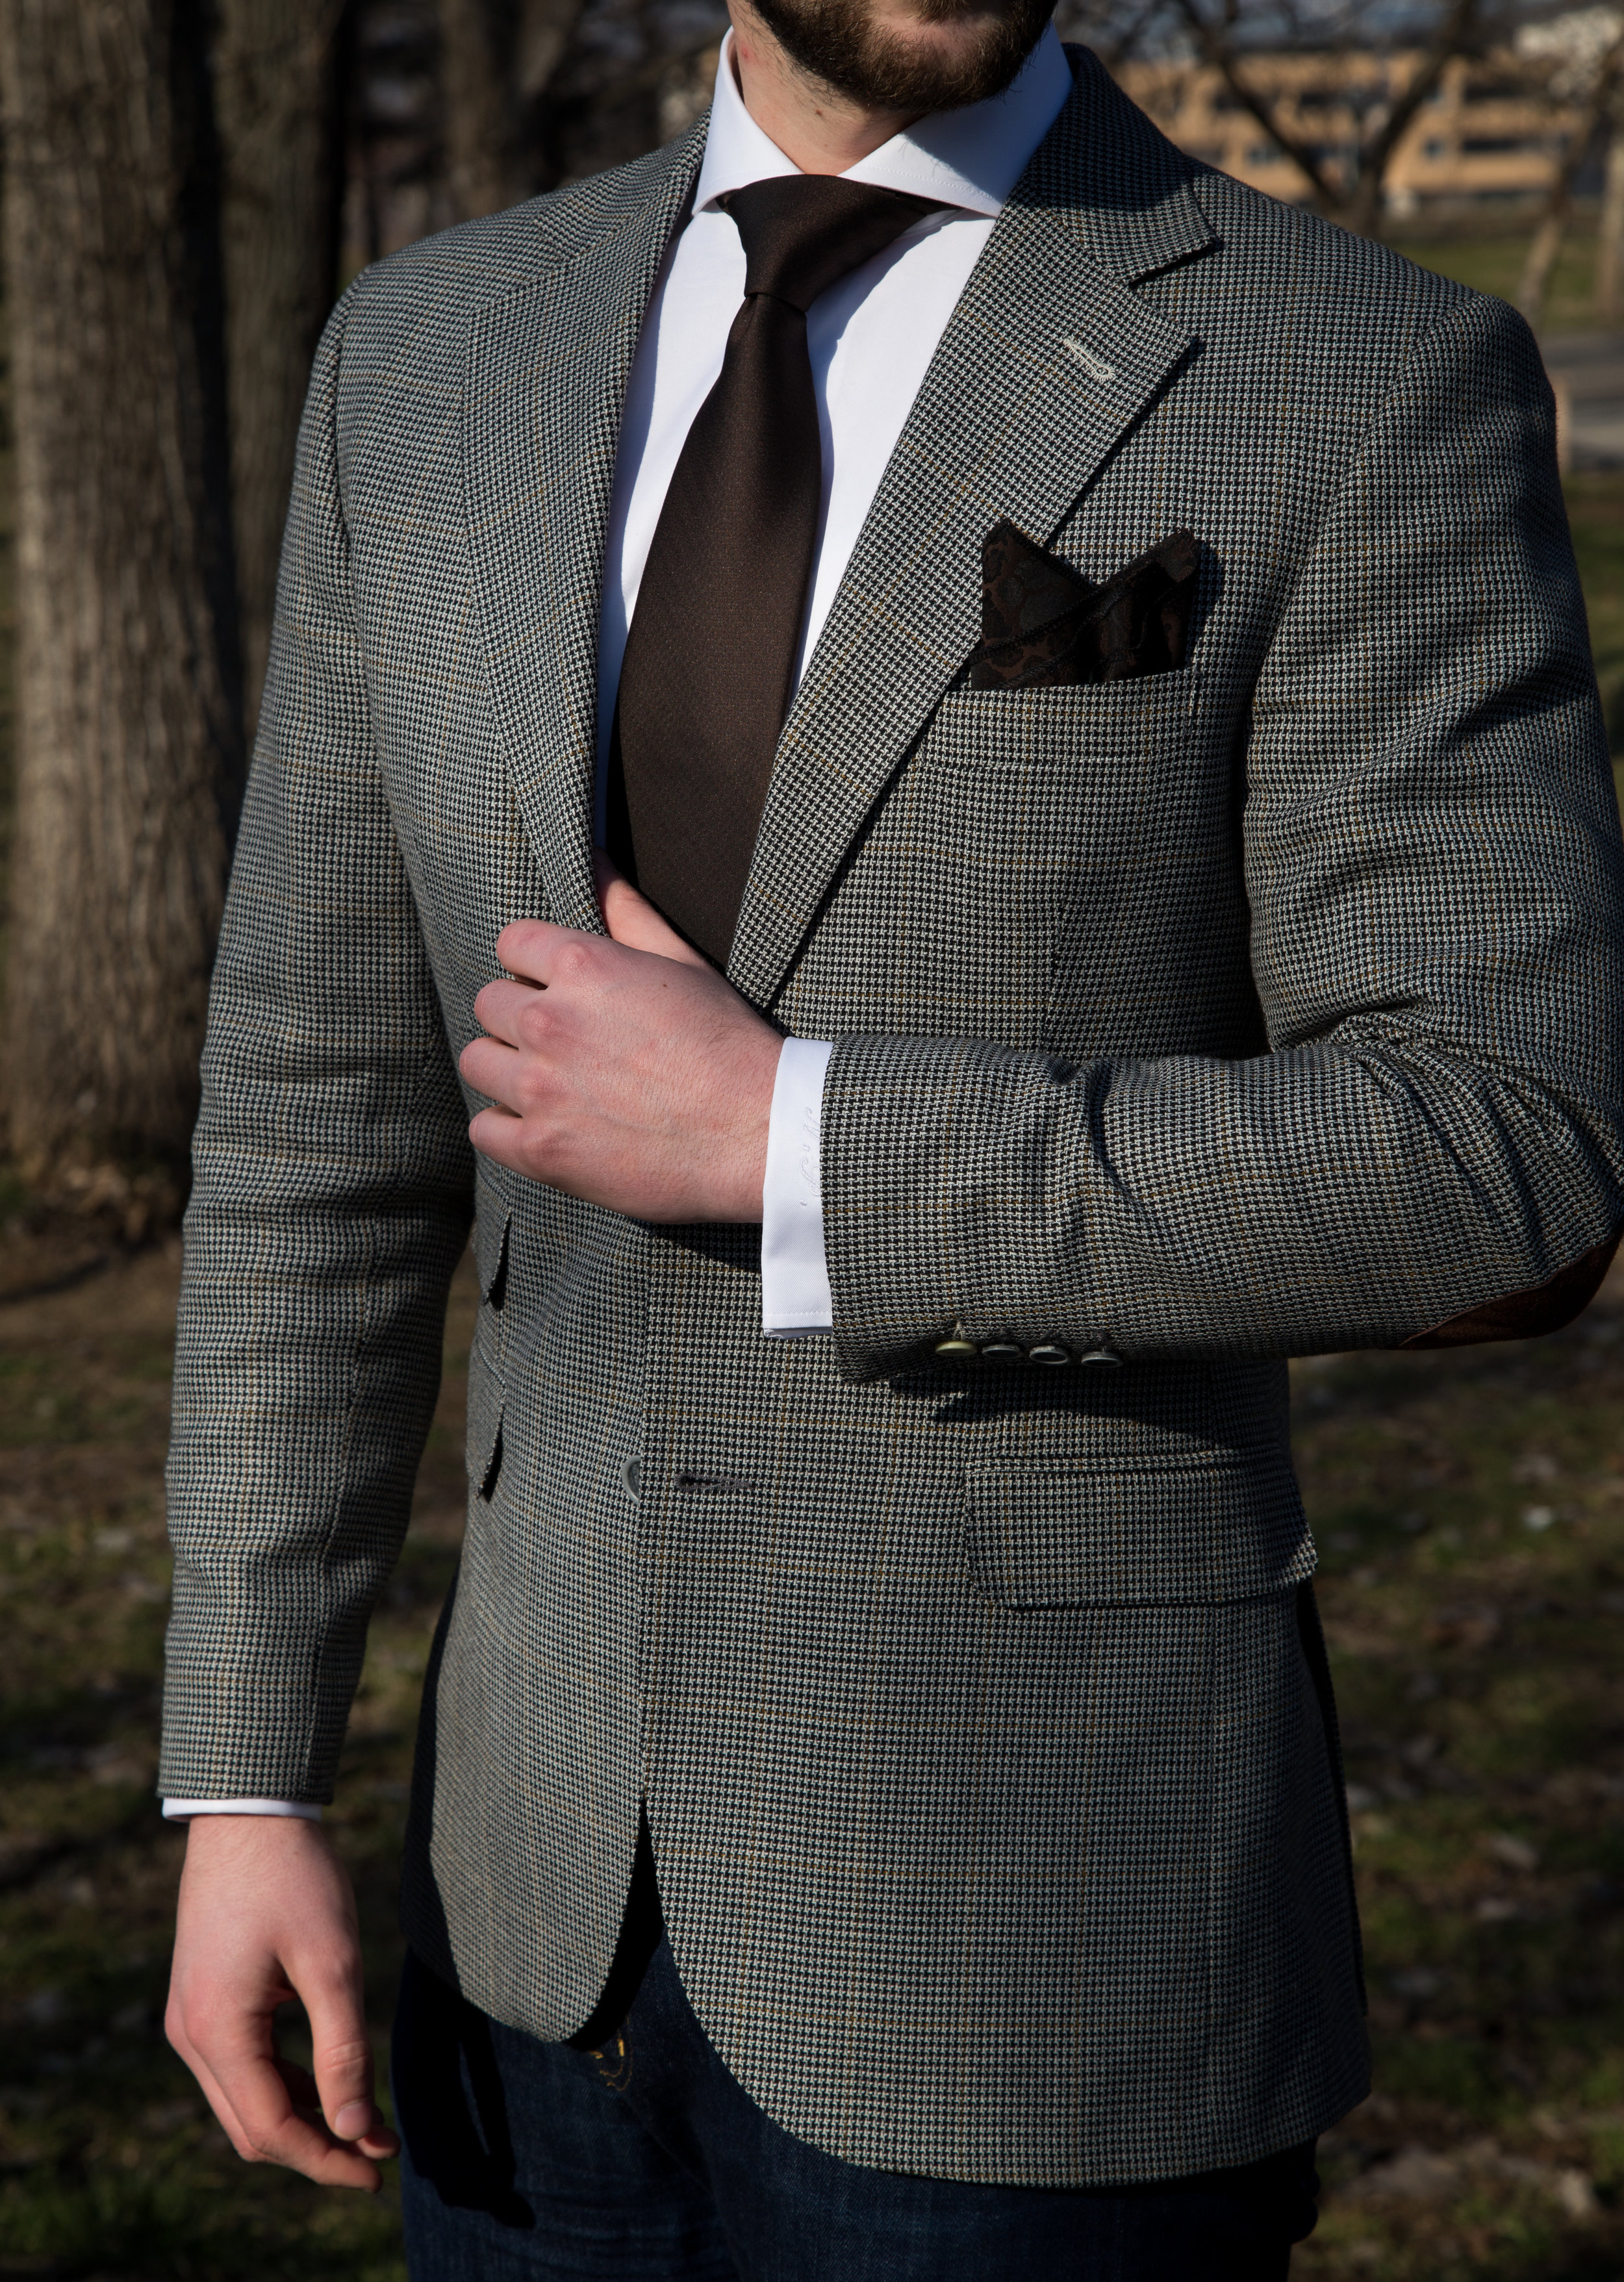 "- 6. The cuffs of your sleeves should peek out of the jacket sleeves by half an inch. Avoid the jacket sleeve hitting your knuckles at all costs!7. The edge of your suit pants should just brush the top of your shoes, though if you want to show some sock have it cut right above the ankle. Just make sure you don't have extra length as it creates a sloppy appearance and a smaller stature.8. The suit jacket length will help dictate how ""balanced"" your upper body is to your lower body. Mess up the length of the jacket and the whole suit will look off. If you are under 5'9"", the jacket should end right around the mid crotch area. Any taller should be in the mid to lower range.9. Suit pants should fit perfectly around your waist with no need for a belt to hold them up. Unlike jeans, which are generally designed to sit lower, suit pants should hit near the high hipbone area, or even slightly higher.10. Most suit jackets are made with a standard, or ""democratic"